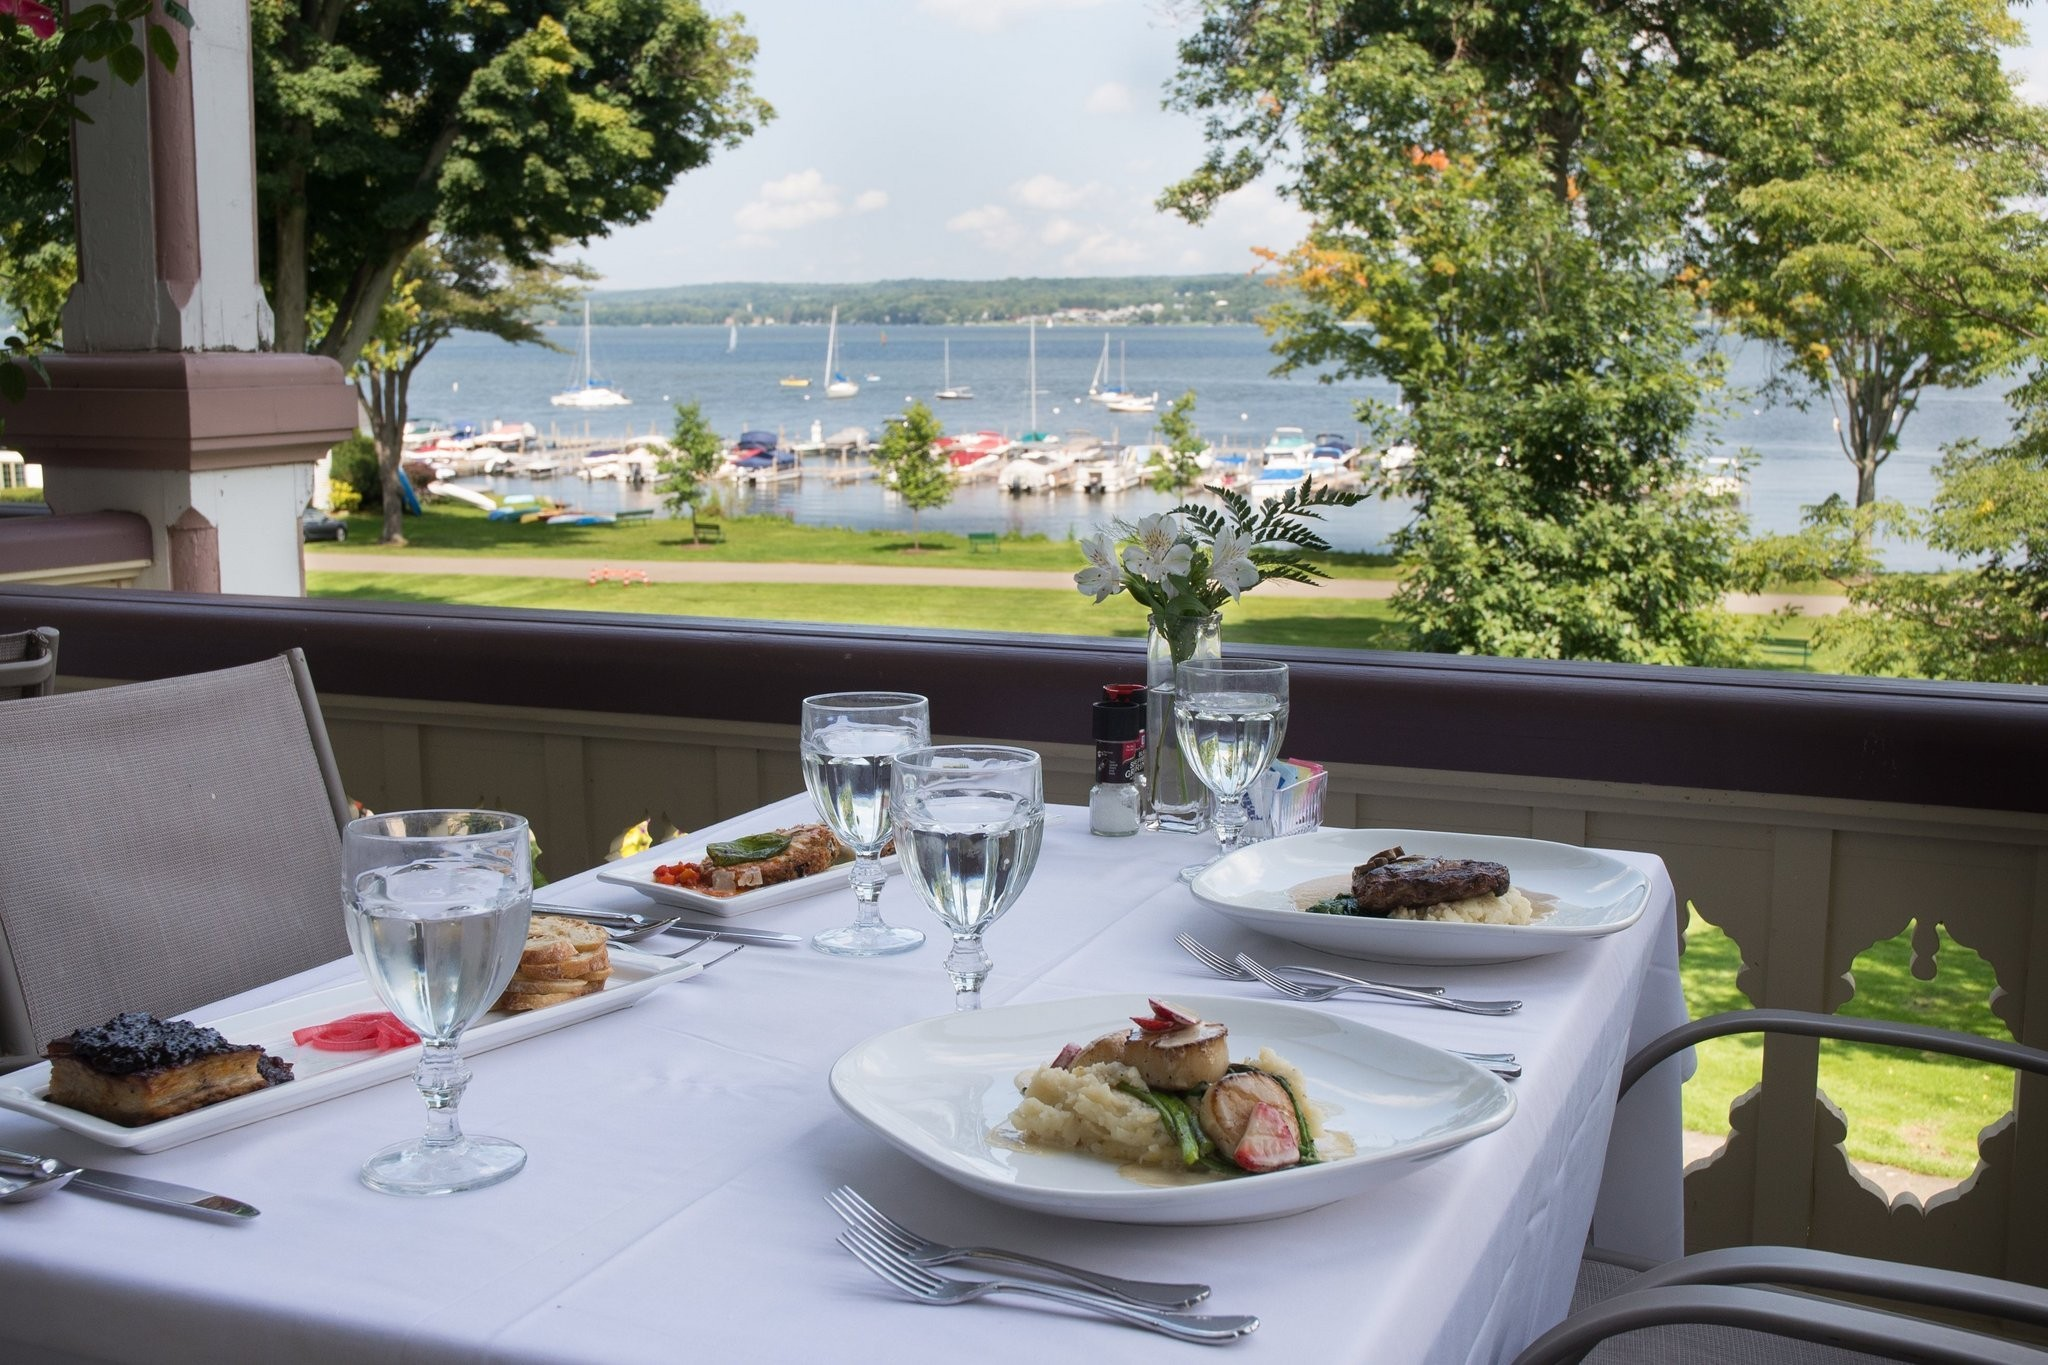 Waterfront Restaurants In Upstate Ny 10 Scenic Places To